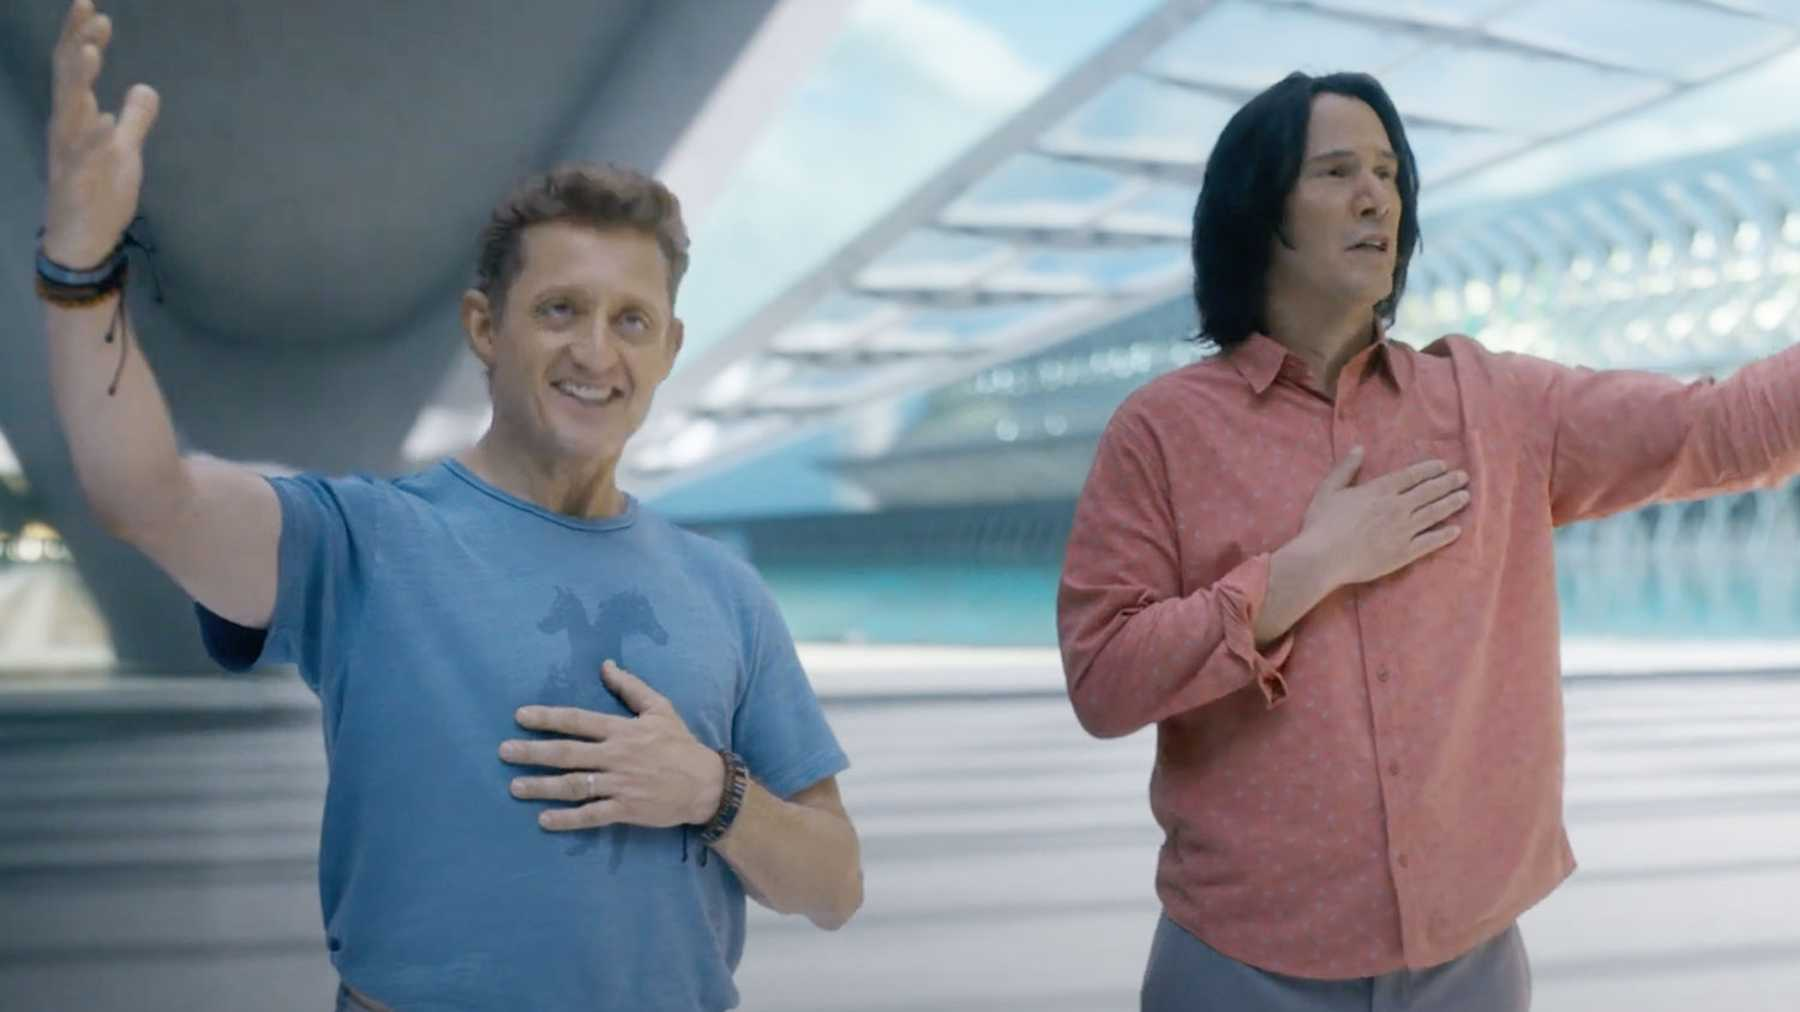 Bill And Ted Face The Music Trailer: Keanu Reeves And Alex Winter ...